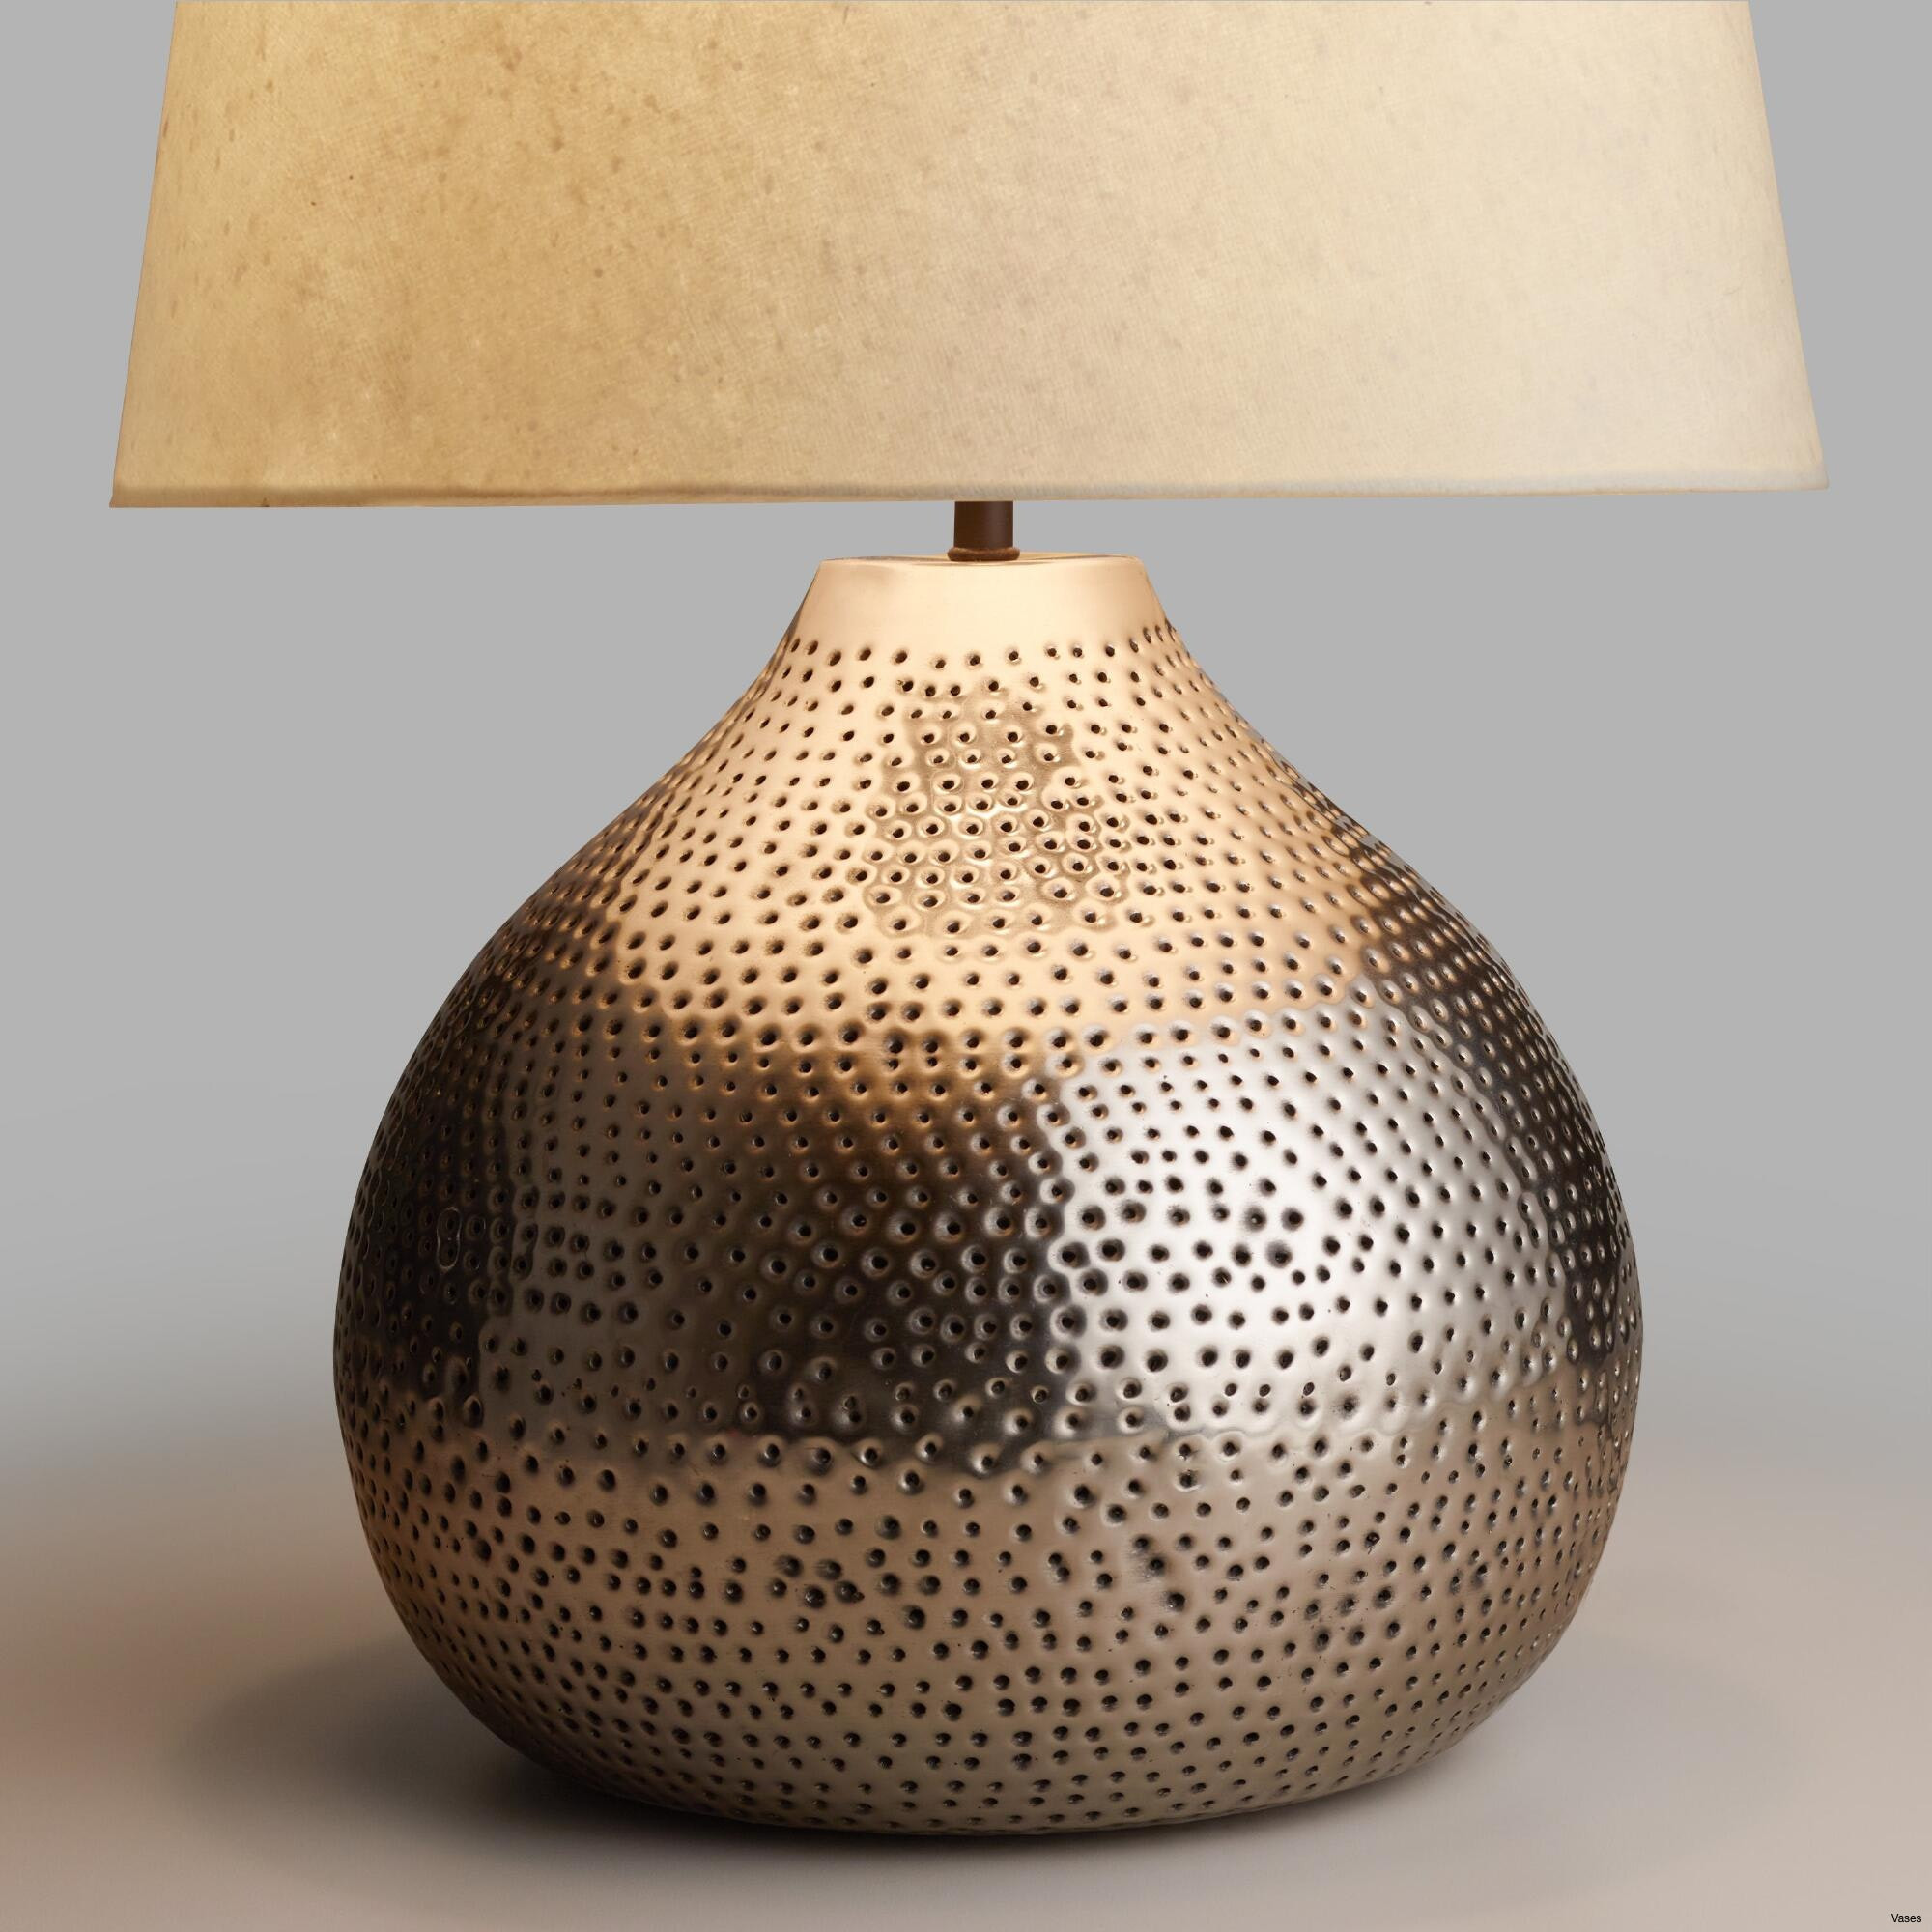 Decorative Gold Vase Of Gold Table Lamp Base Fresh How to Make A Table Lamp 10h Vases From Regarding Gold Table Lamp Base Fresh How to Make A Table Lamp 10h Vases From Vase now